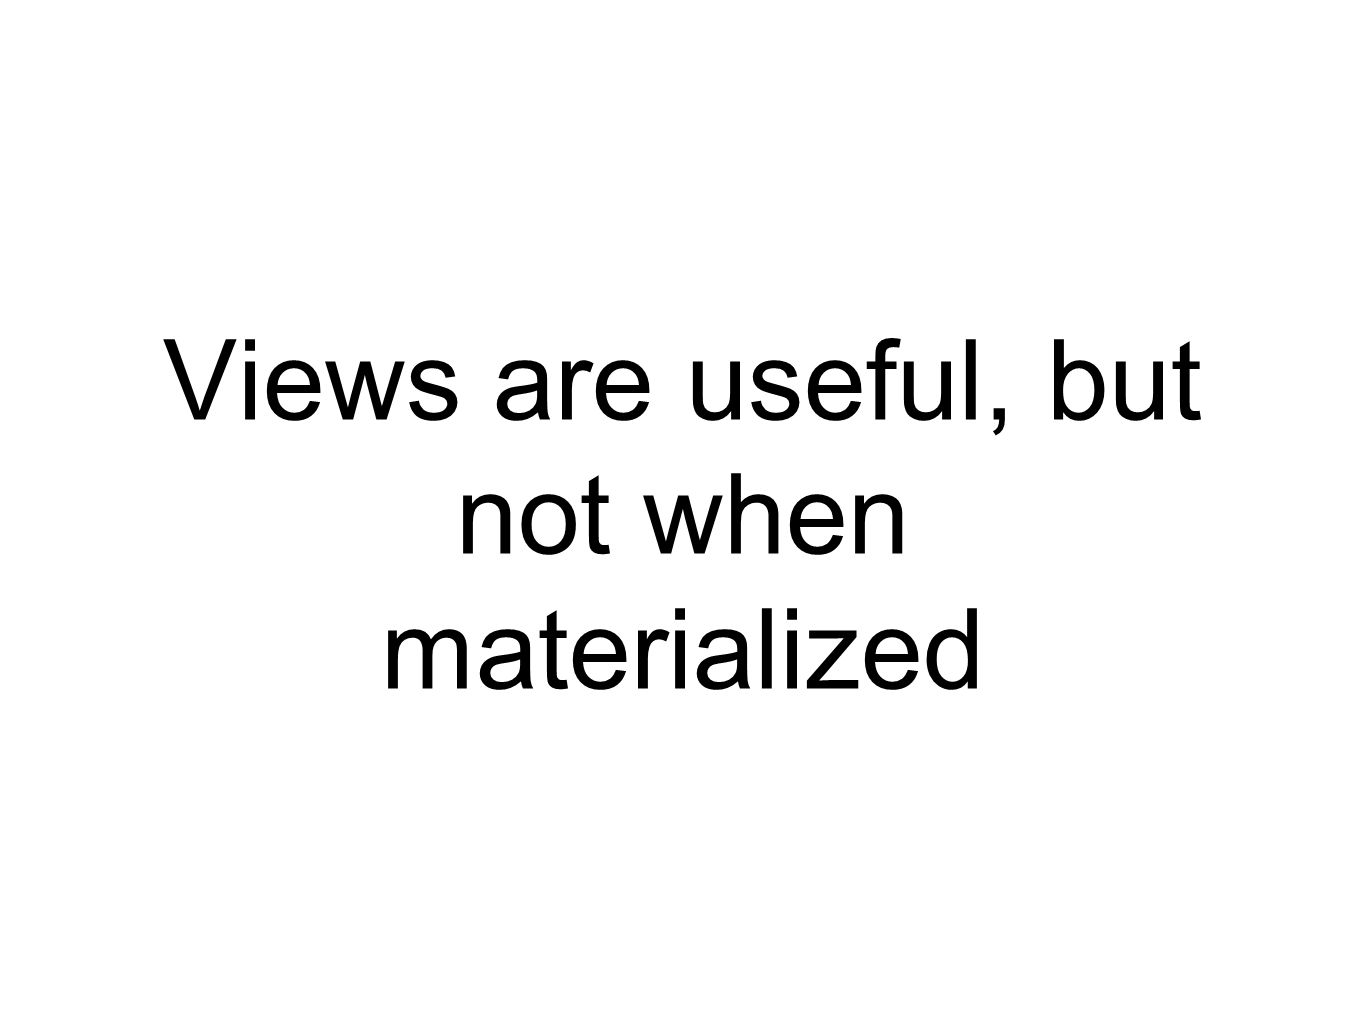 Views are useful, but not when materialized